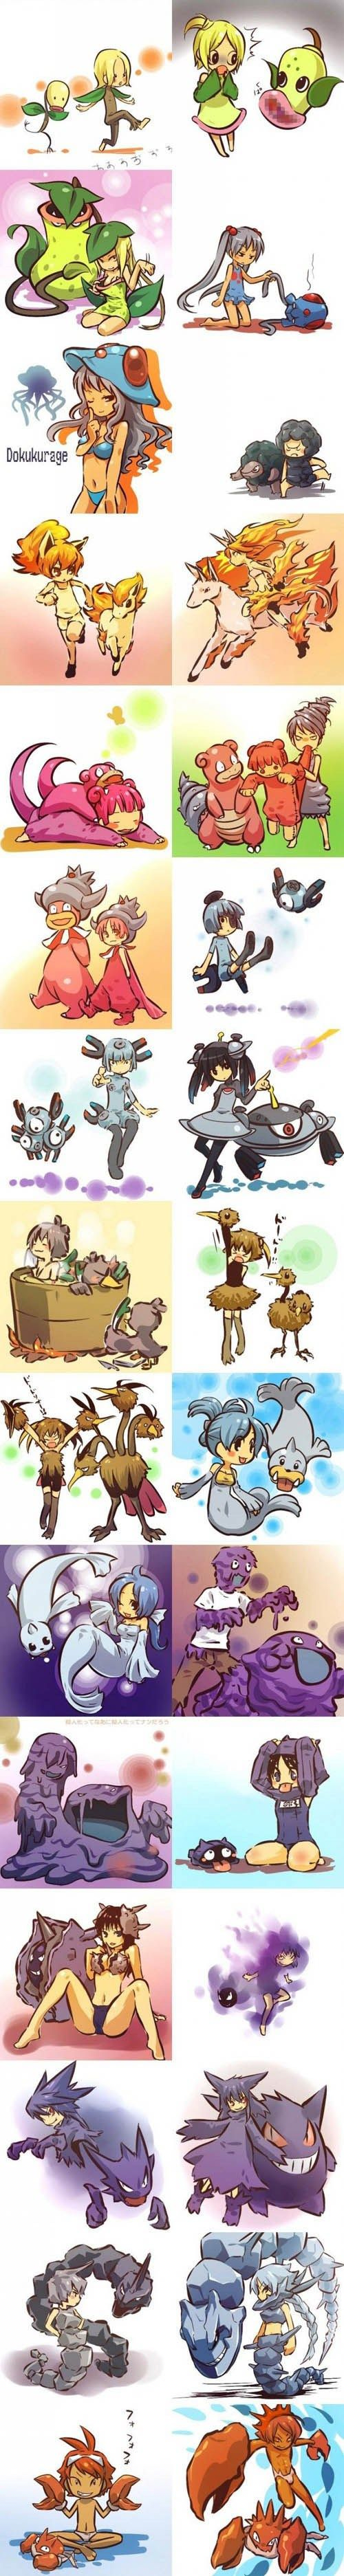 pokemon were humans funny pictures 3